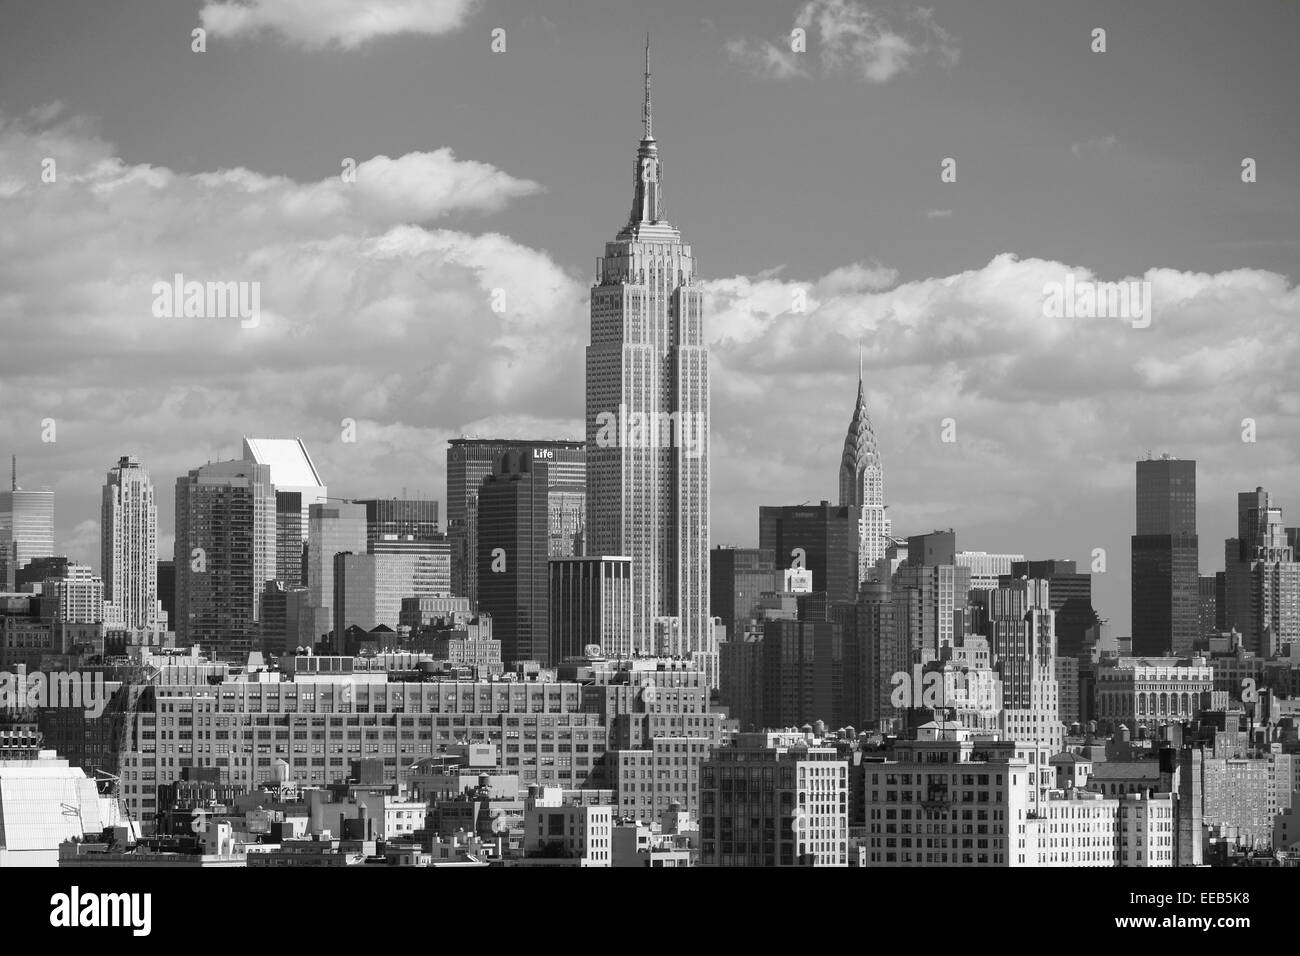 Empire state building, Midtown, New York, USA - Stock Image